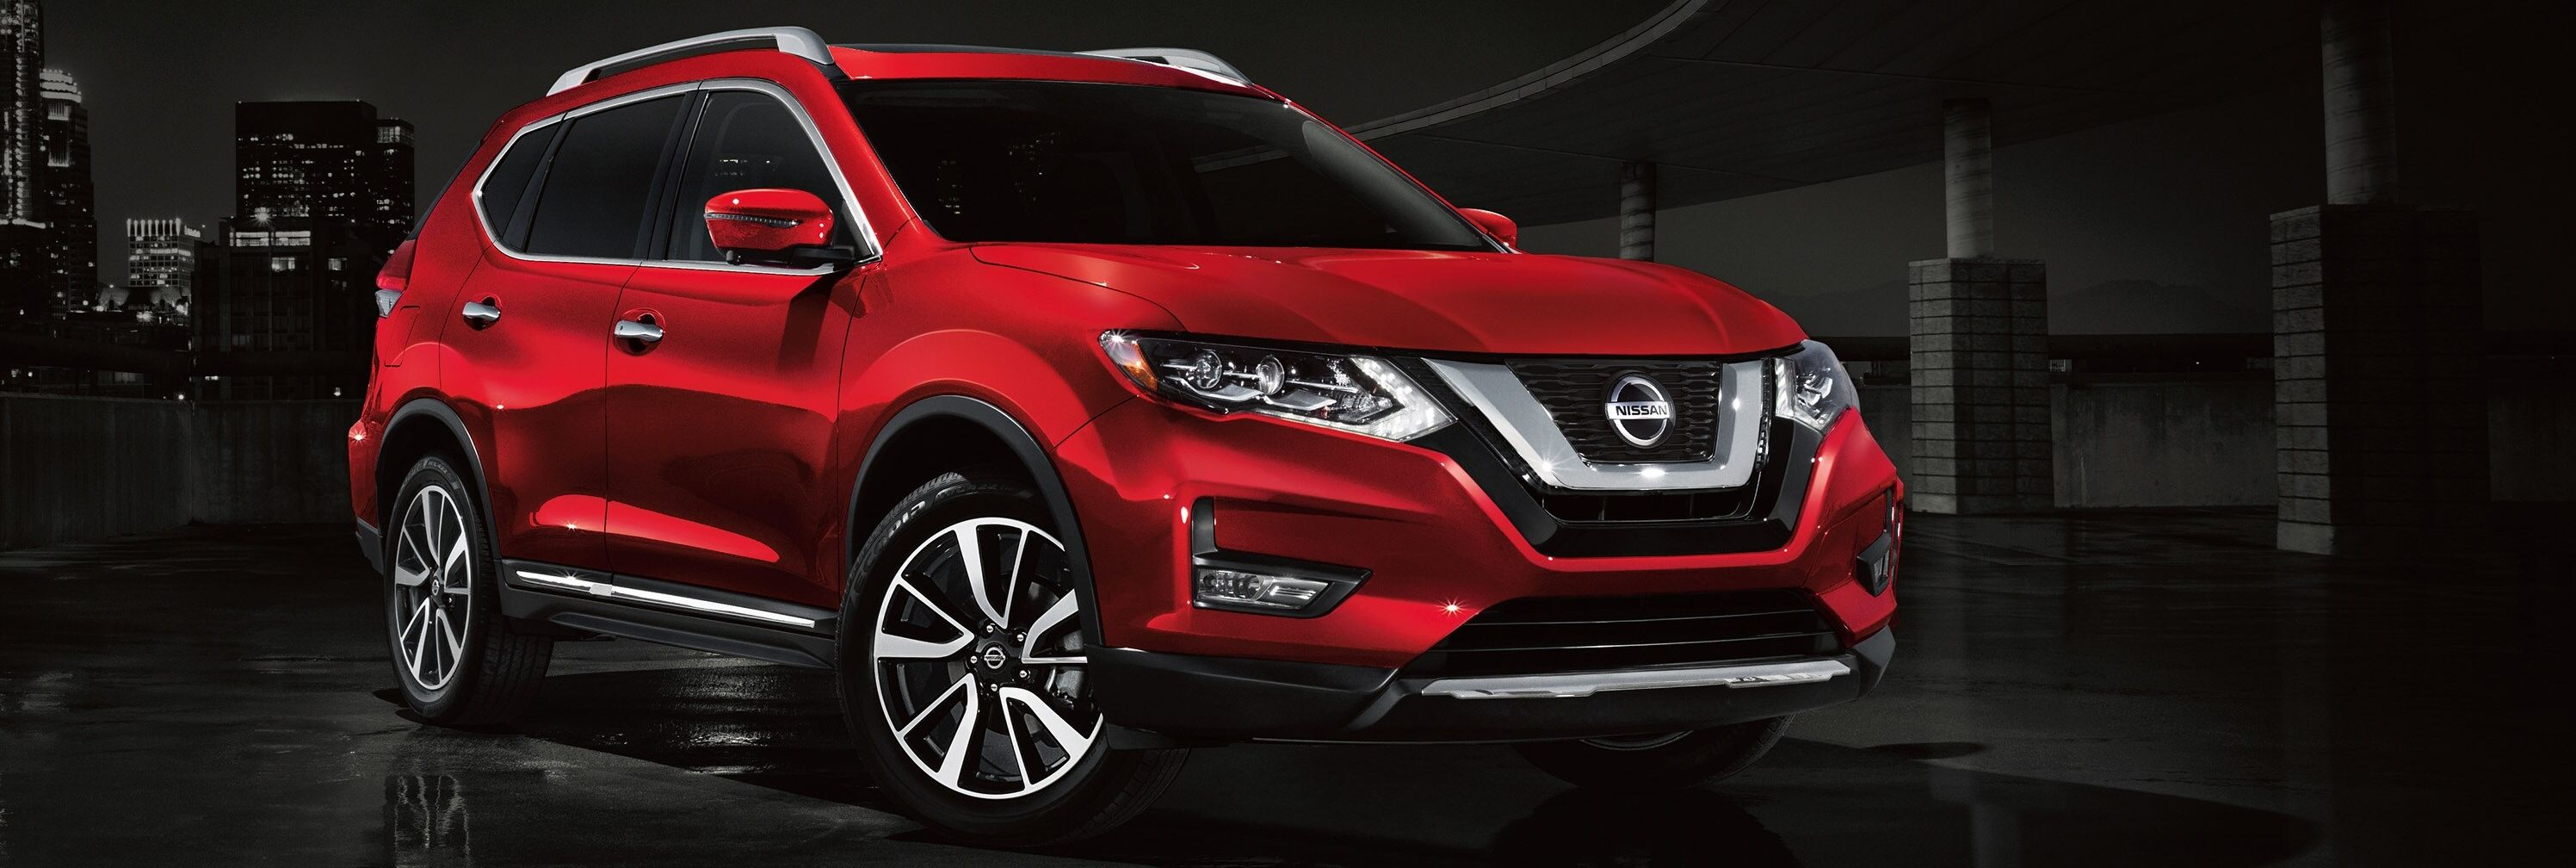 2019 Nissan Rogue for Sale near Morton Grove, IL